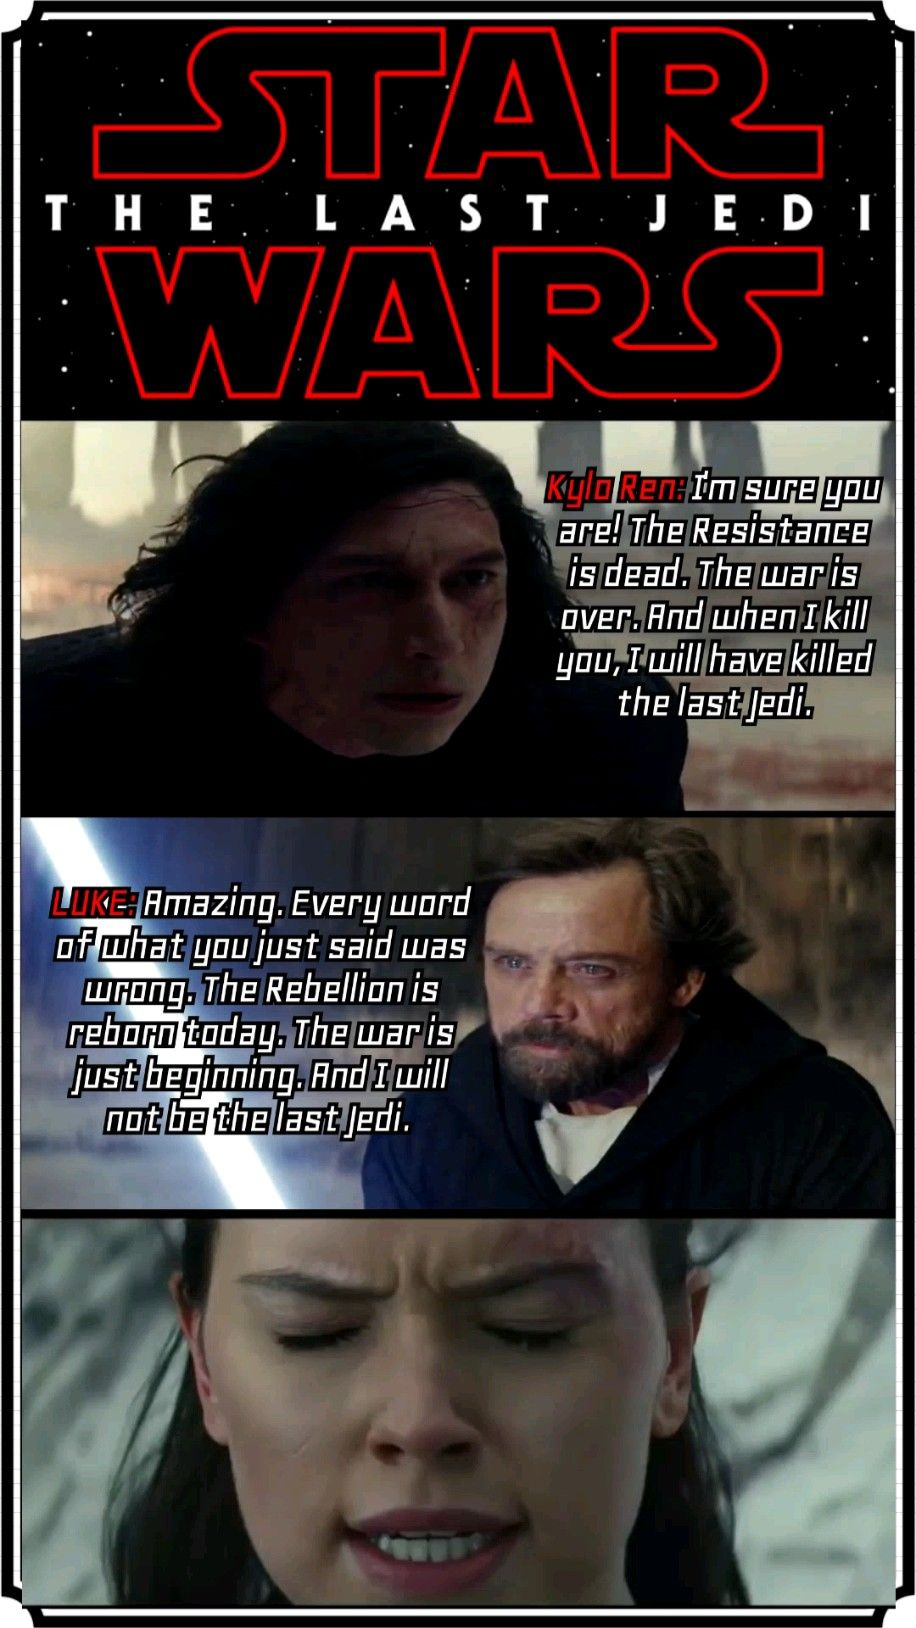 Are you F#####g kidding me, I'm not last Jedi you fool